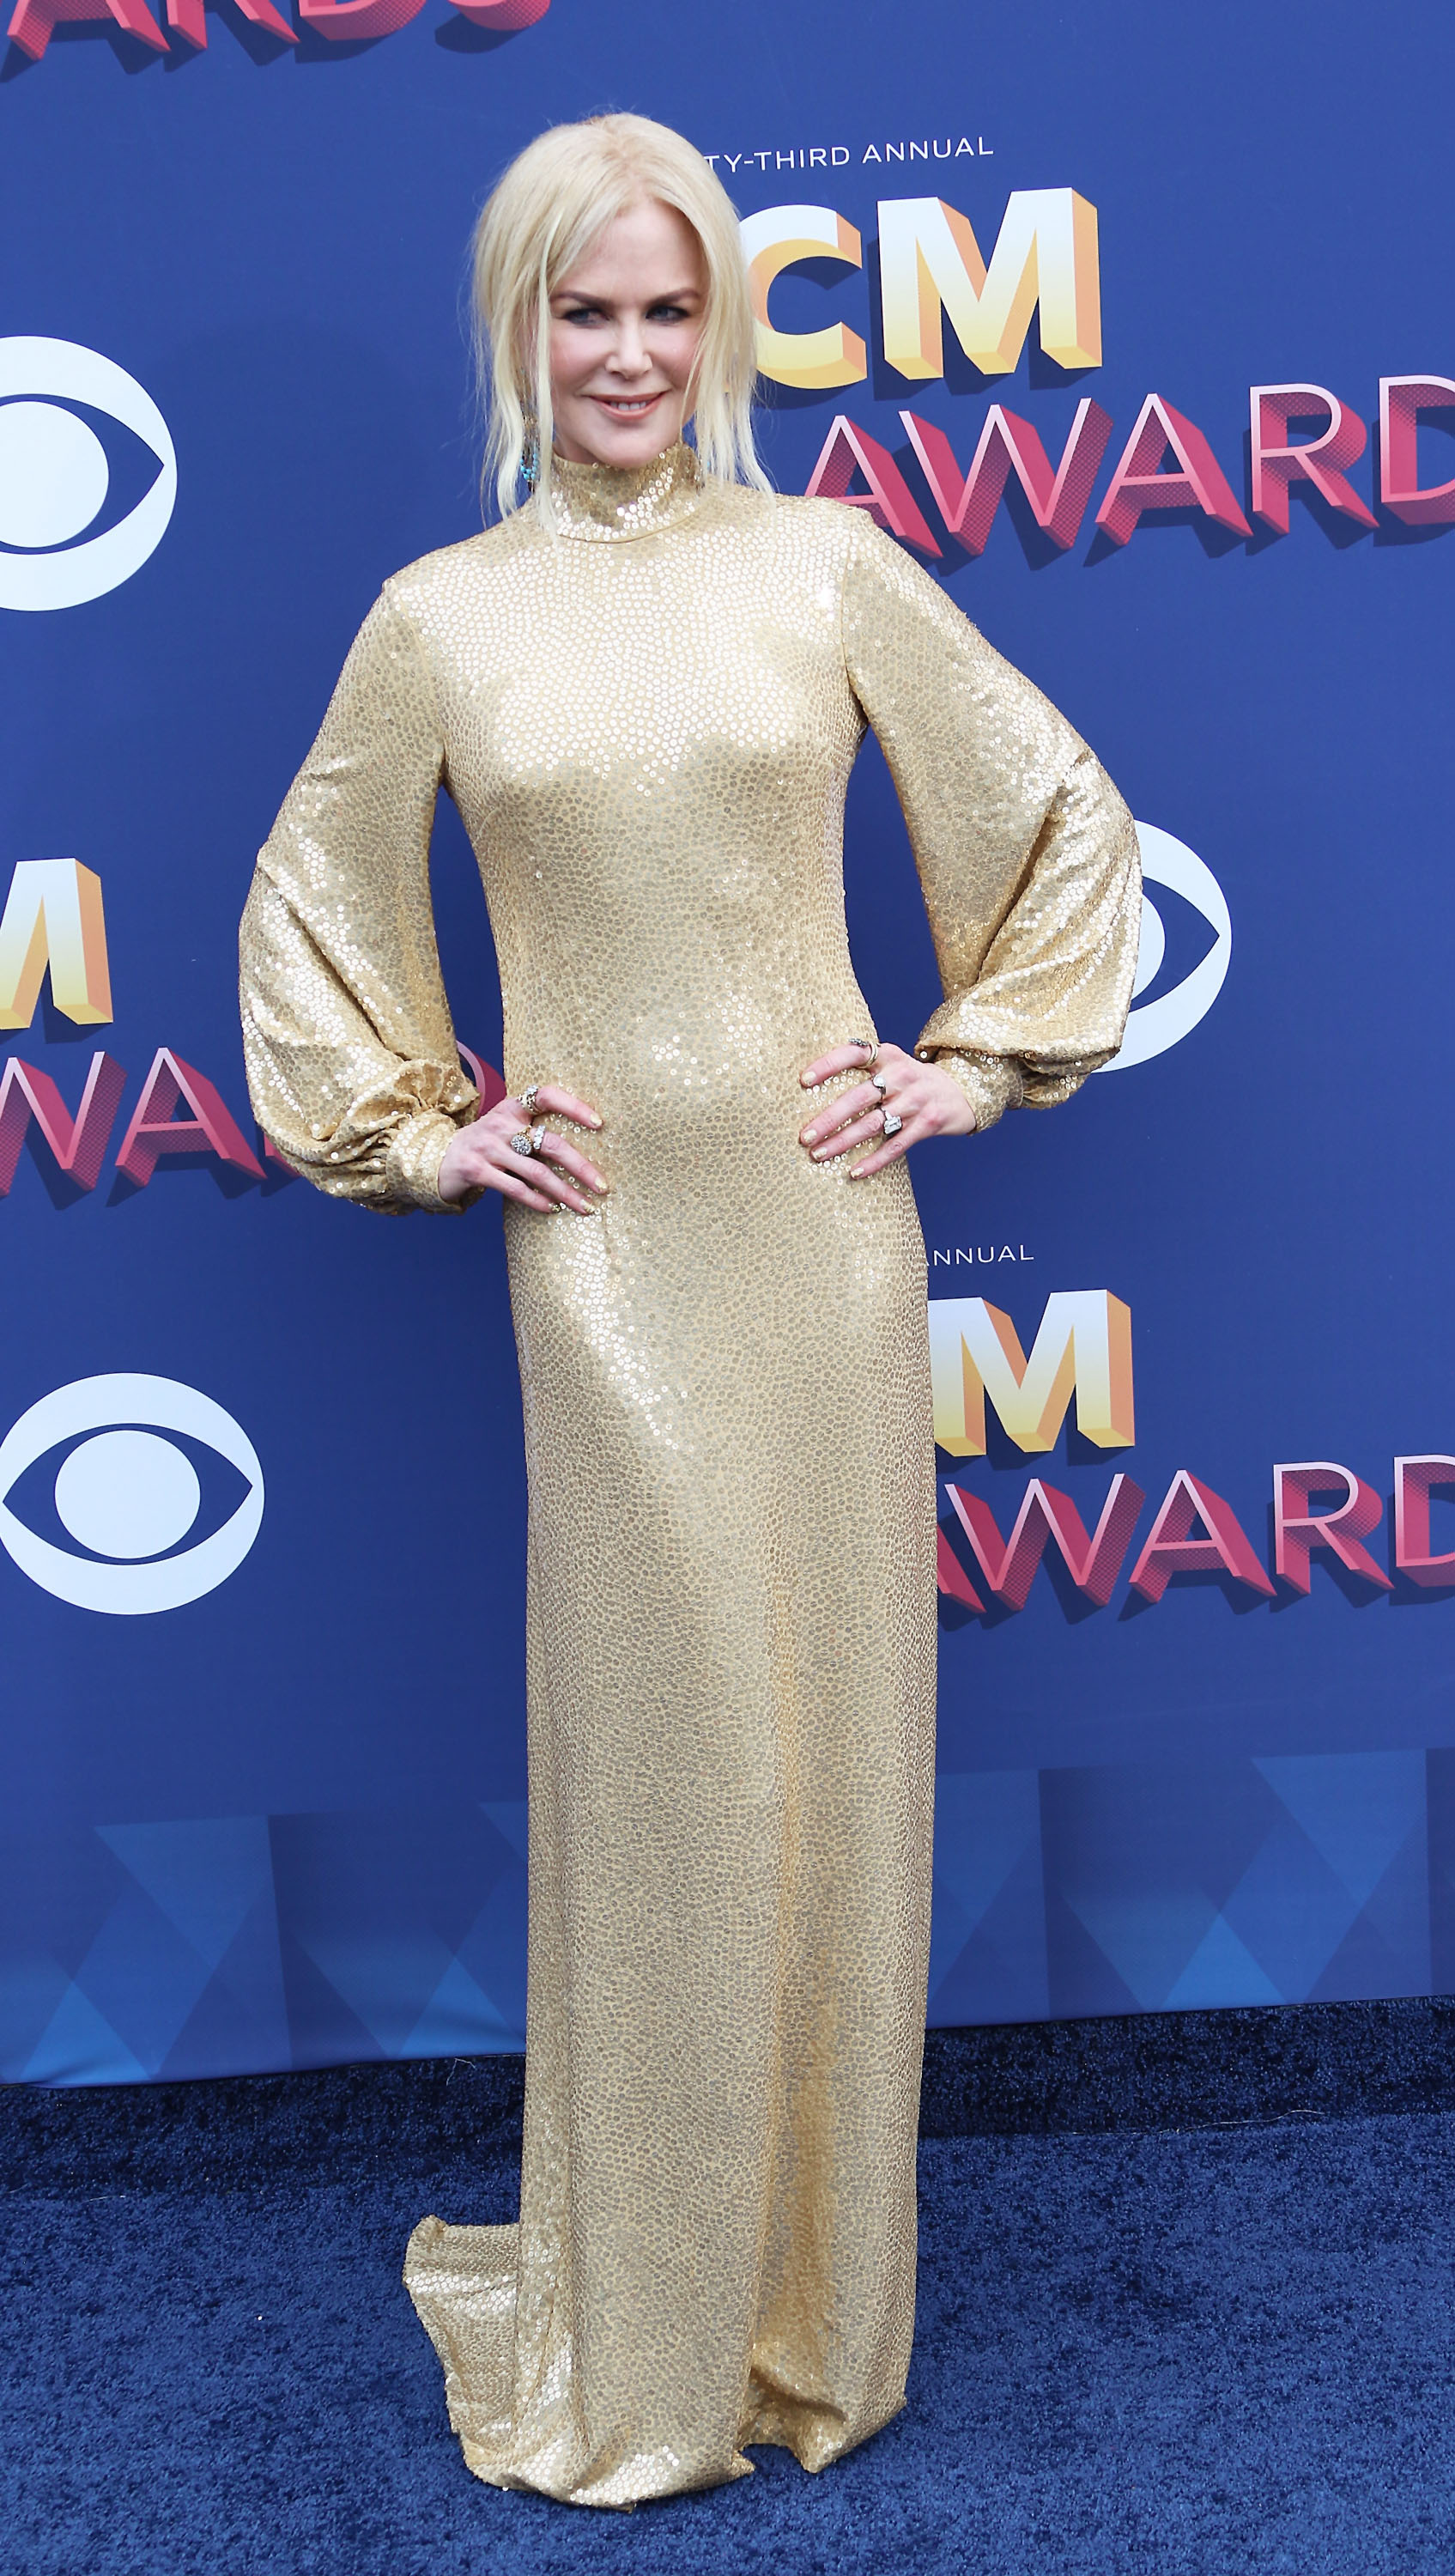 April 15, 2018 - Las Vegas, Nevada, United States of America -The 53 Academy of Country Music  Awards on April 15, 2018  at the MGM Grand  Arena in Las  Vegas, Nevada.  <P> Pictured: Nicole  Kidman <B>Ref: SPL1682575  160418  </B><BR/> Picture by: Zuma / Splash News<BR/> </P><P> <B>Splash News and Pictures</B><BR/> Los Angeles:310-821-2666<BR/> New York:212-619-2666<BR/> London:870-934-2666<BR/> <span id=